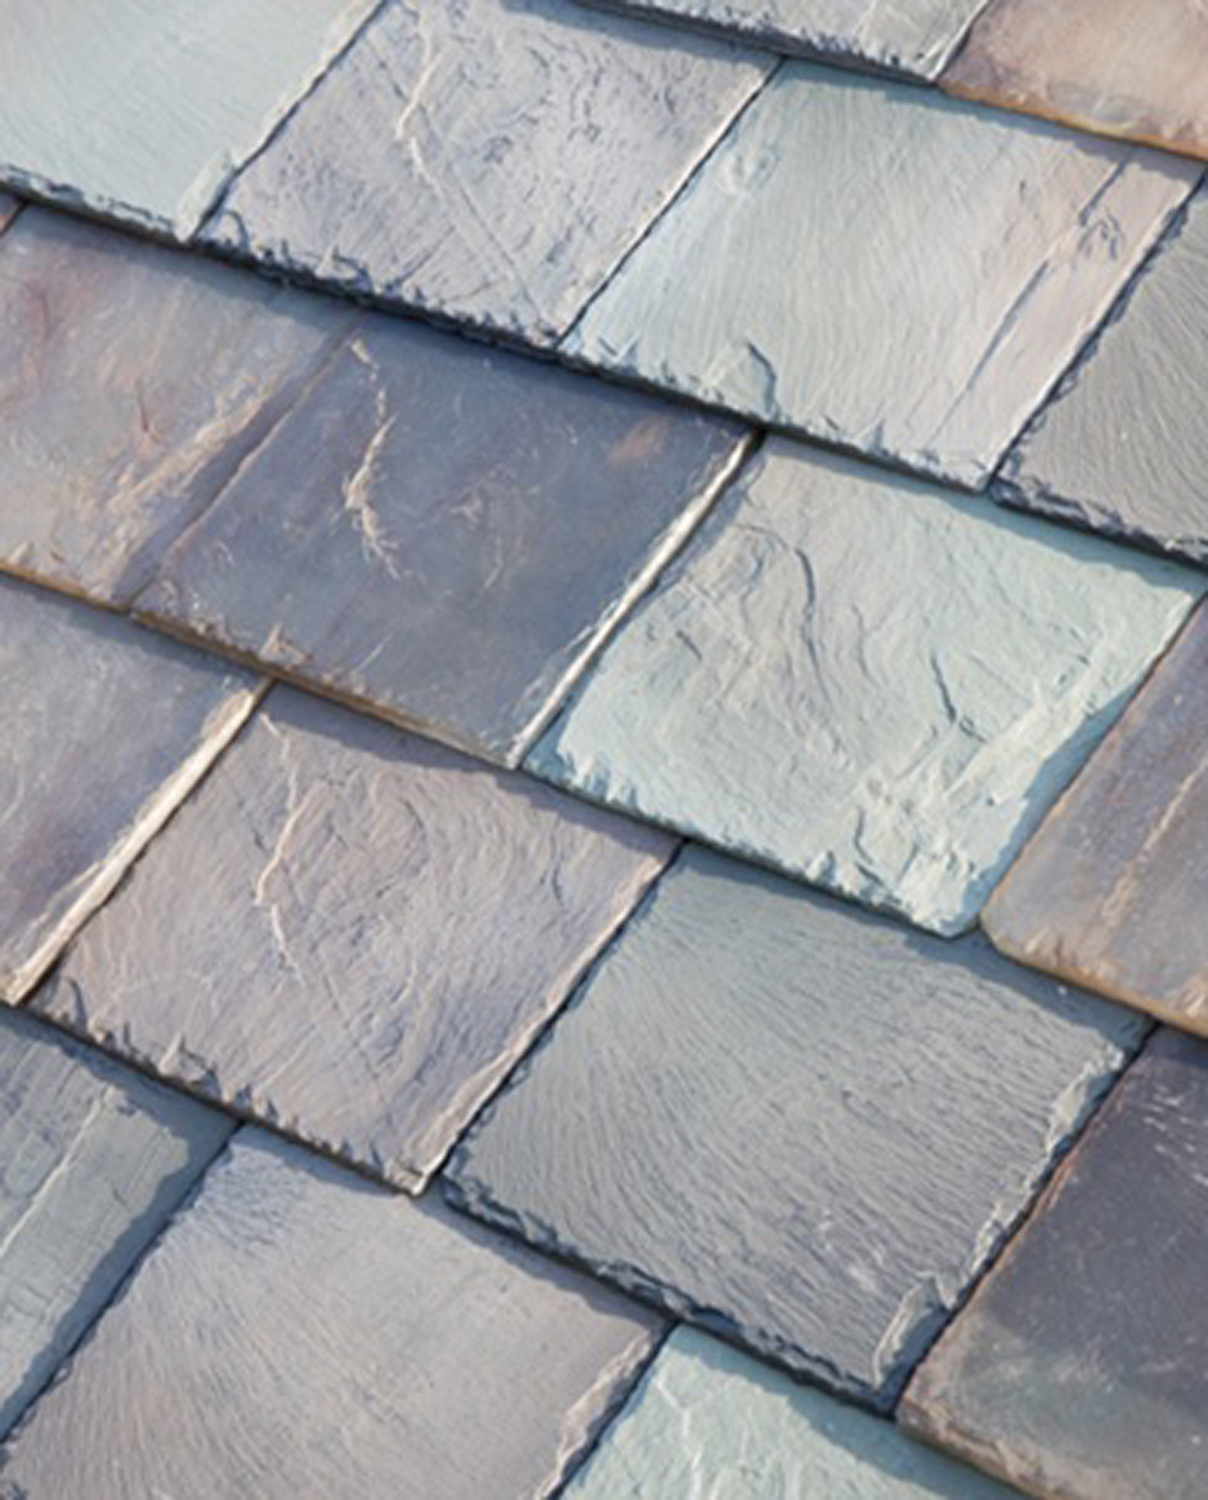 Solar panels are fabricated to mimic existing roof materials like tile and slate.